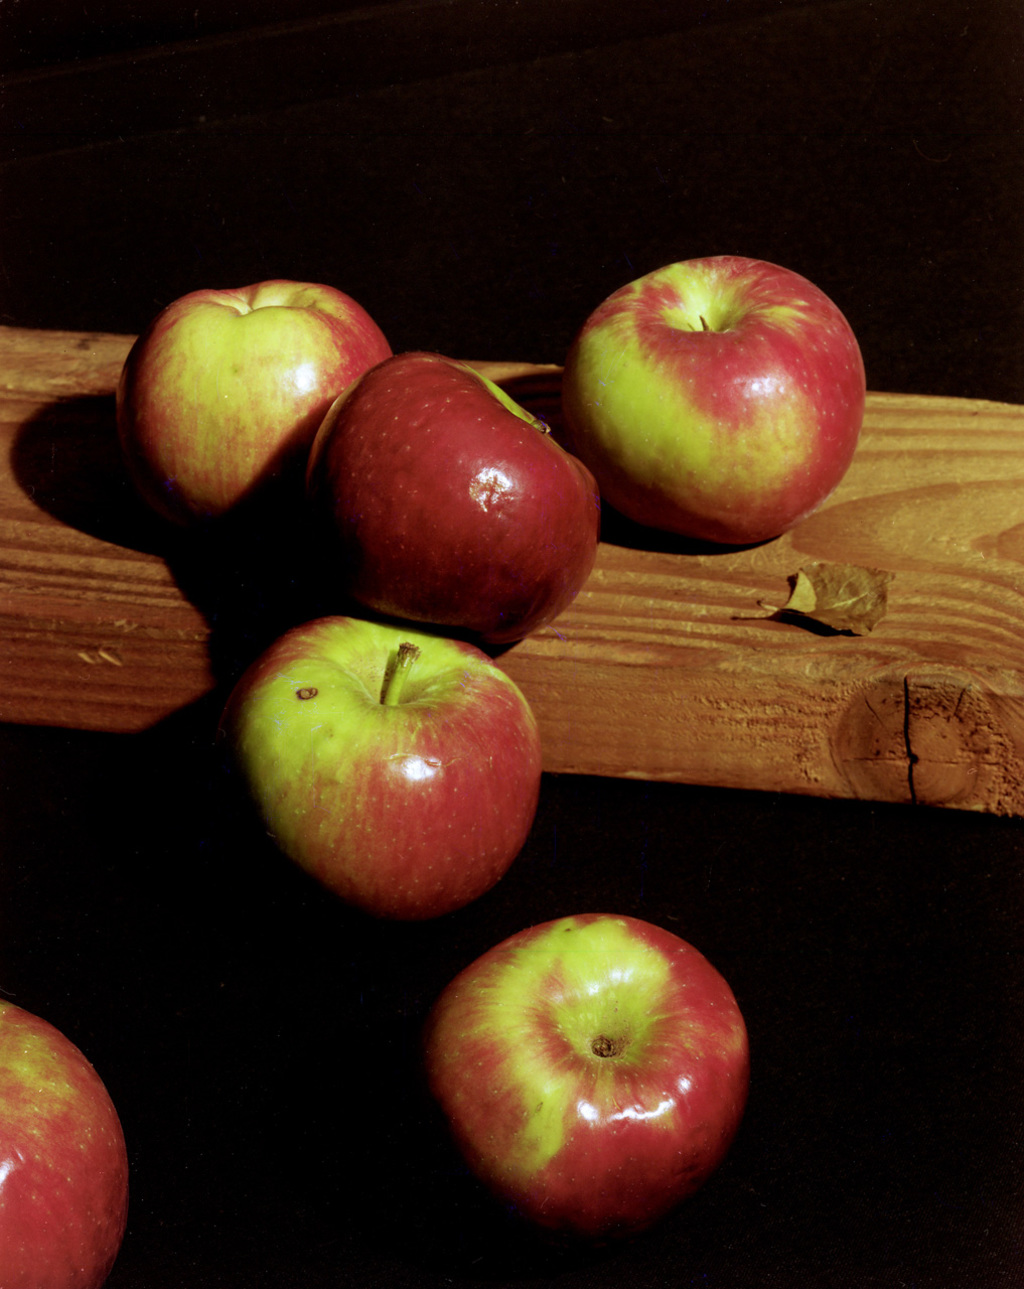 Apples and Wood, 2009 © Lucas Blalock